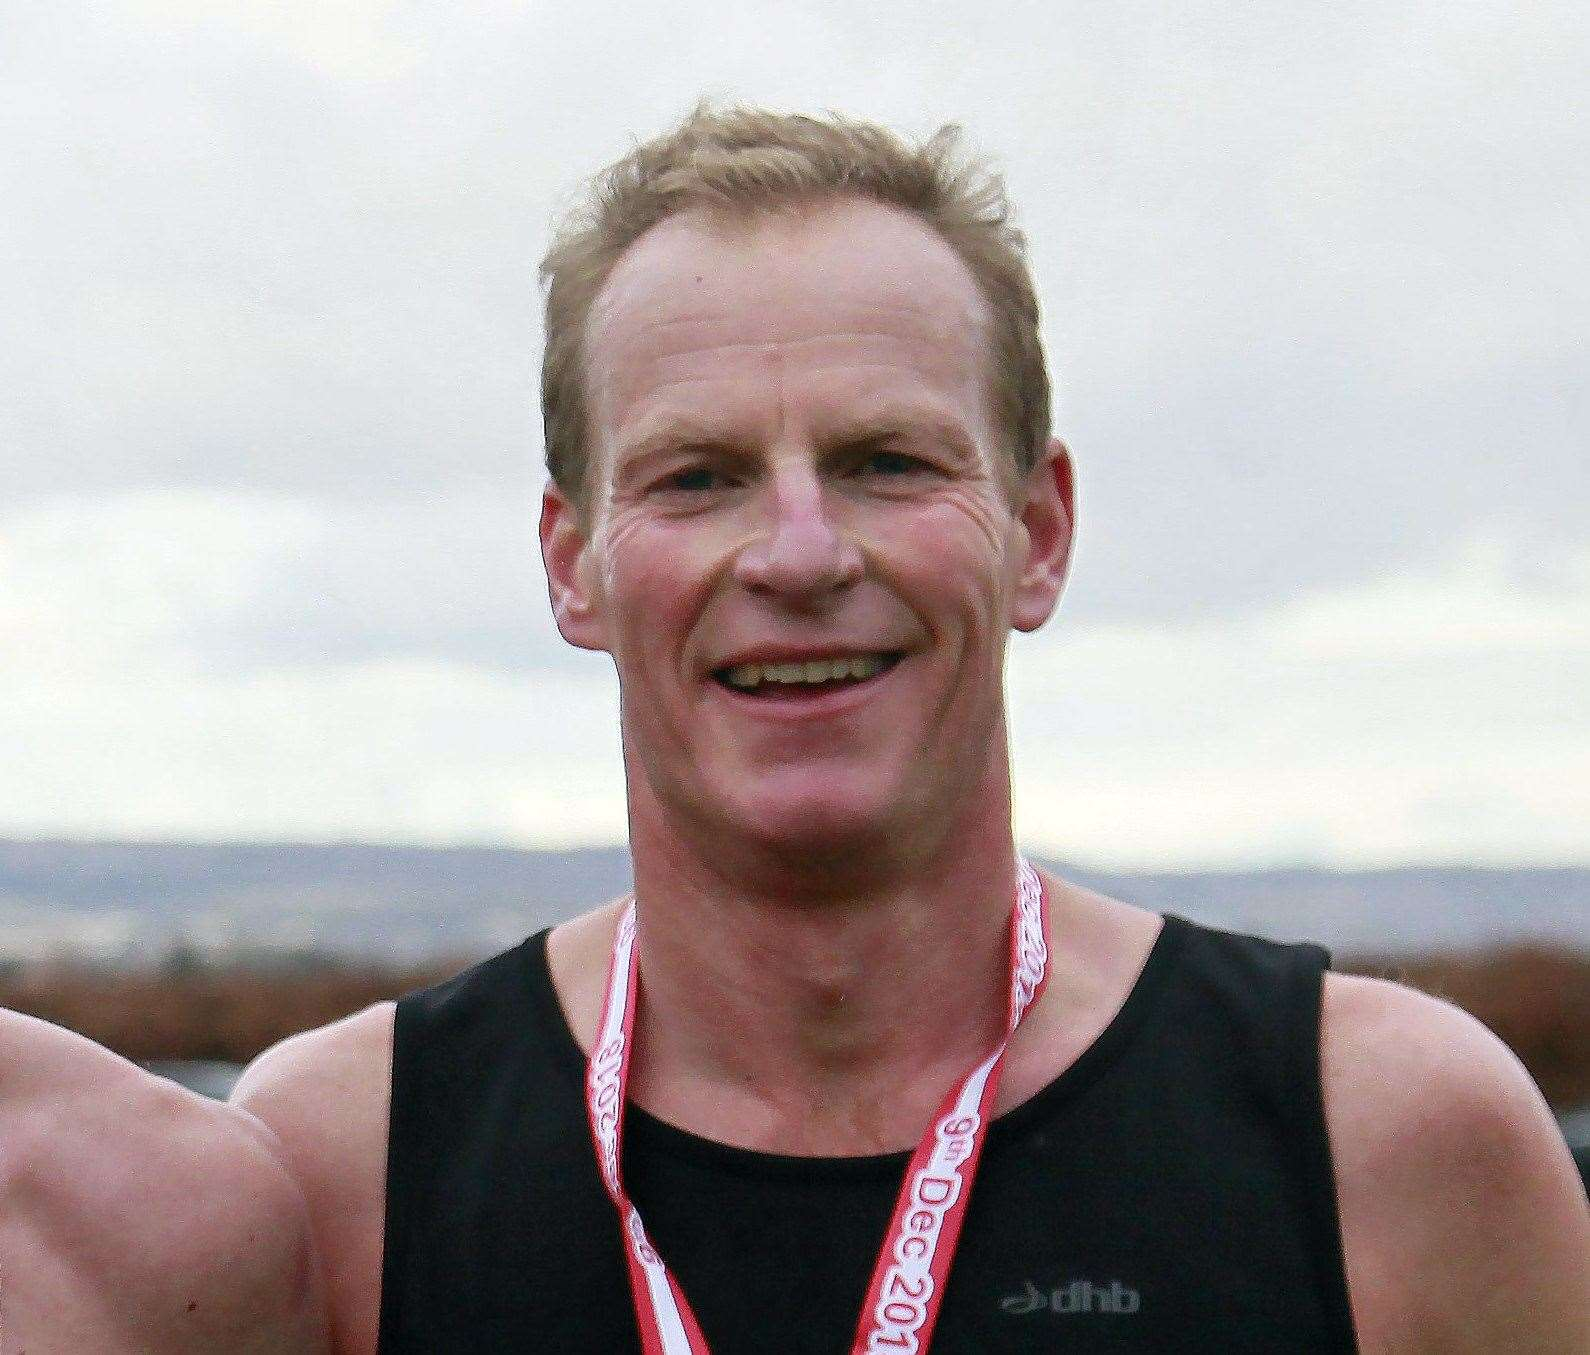 Top men's runner in the Lockdown League was Richard Tomlinson Picture: Sean Aidan